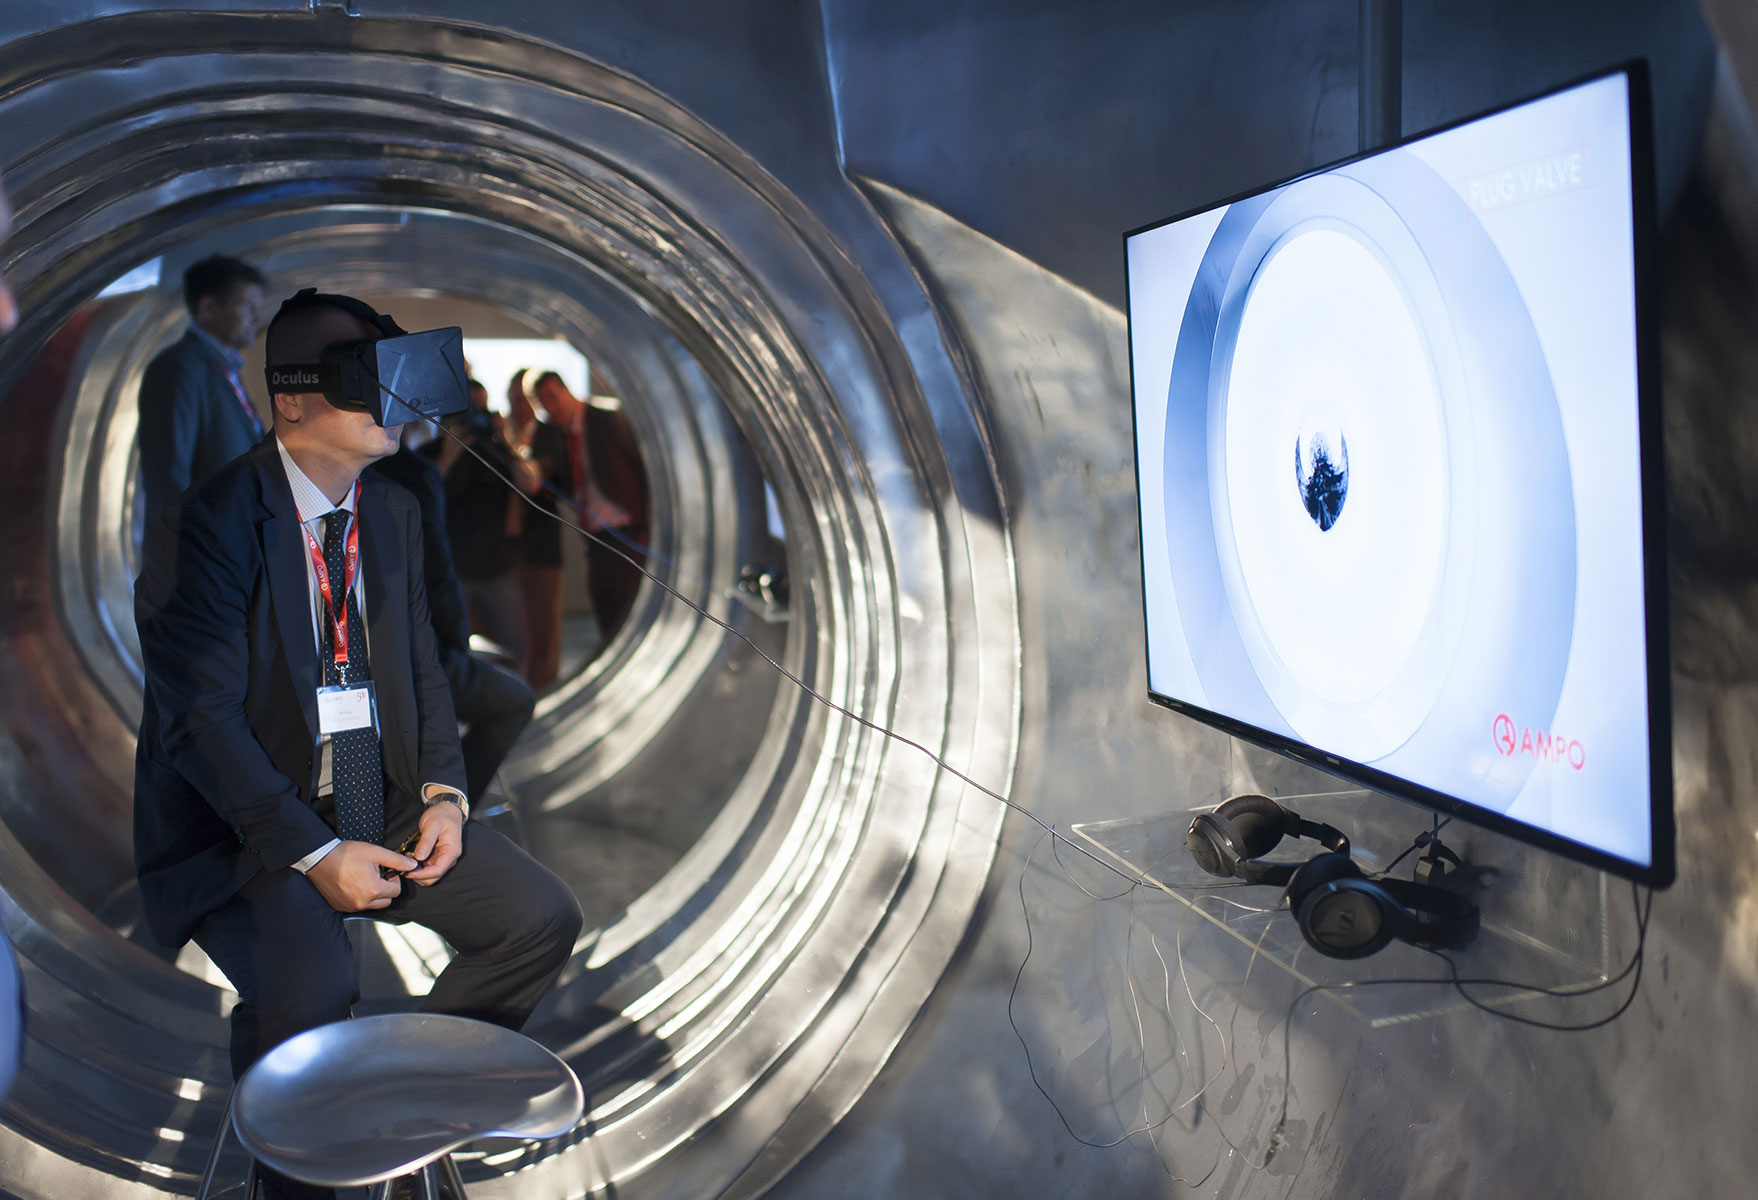 Experience-inside-a-valve-with-Virtual-Reality